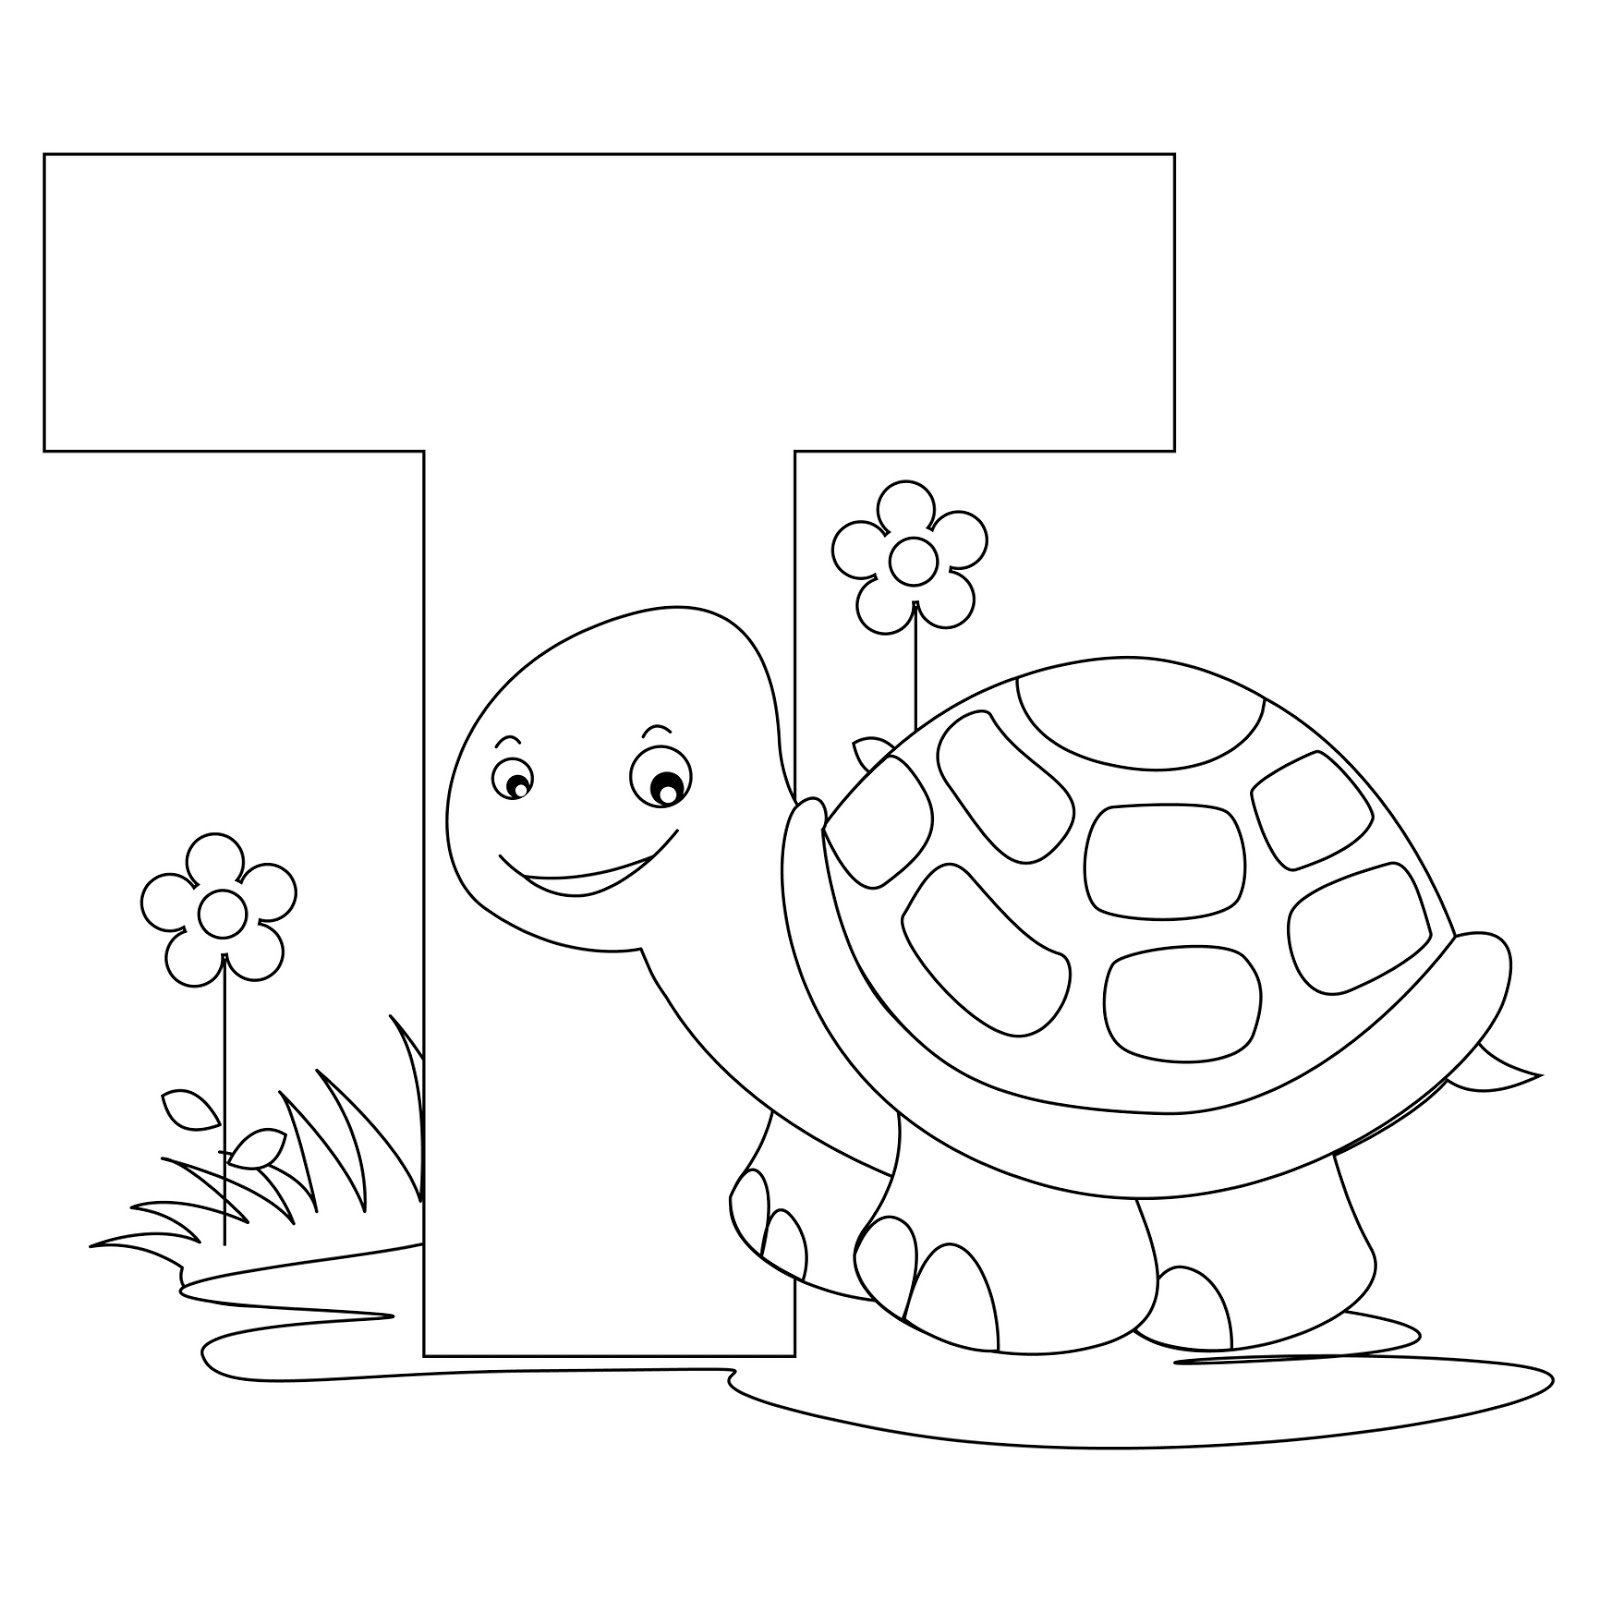 Animal Alphabet Letter T coloring - Turtle coloring ~ Child Coloring